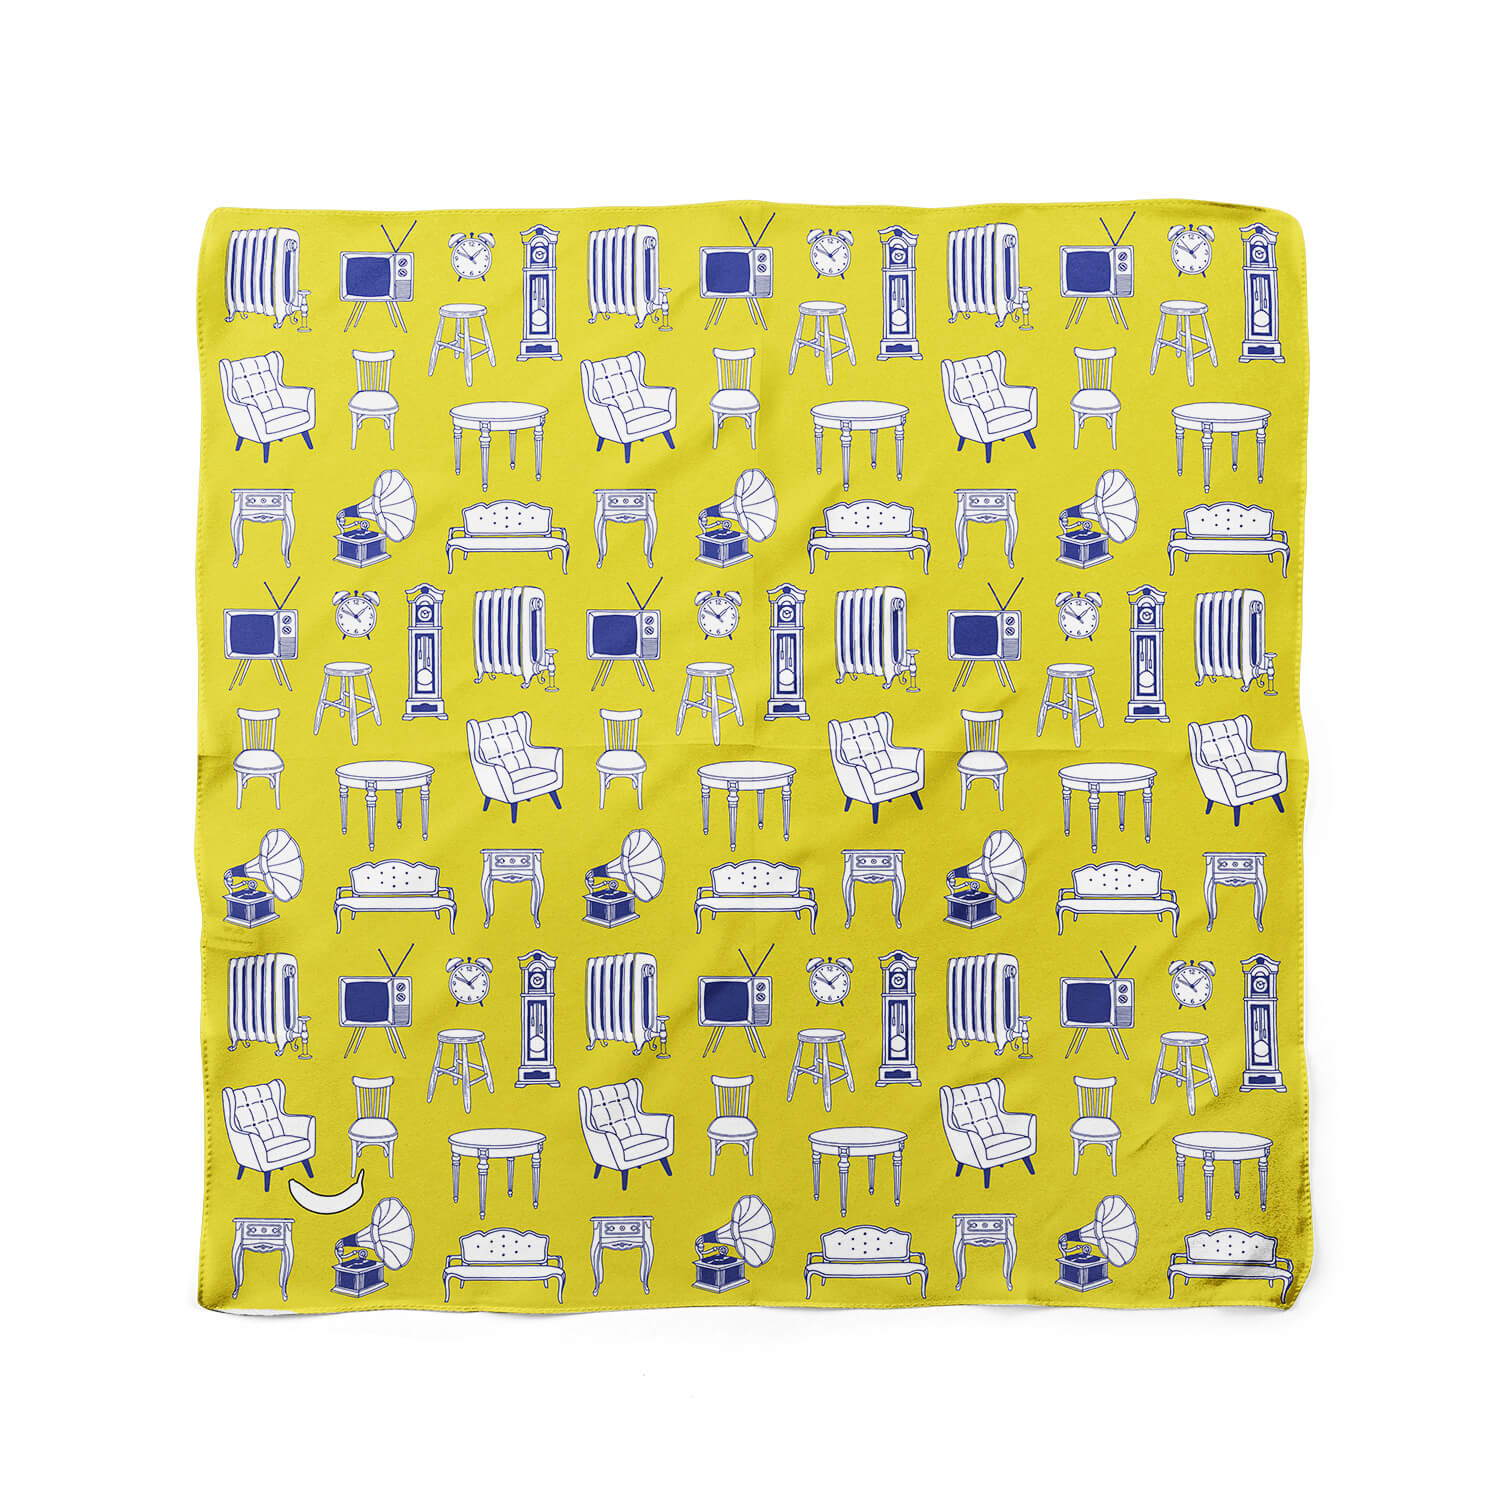 Banana Bandanas Home Sweet Home dog bandana home furniture illustration dog bandana